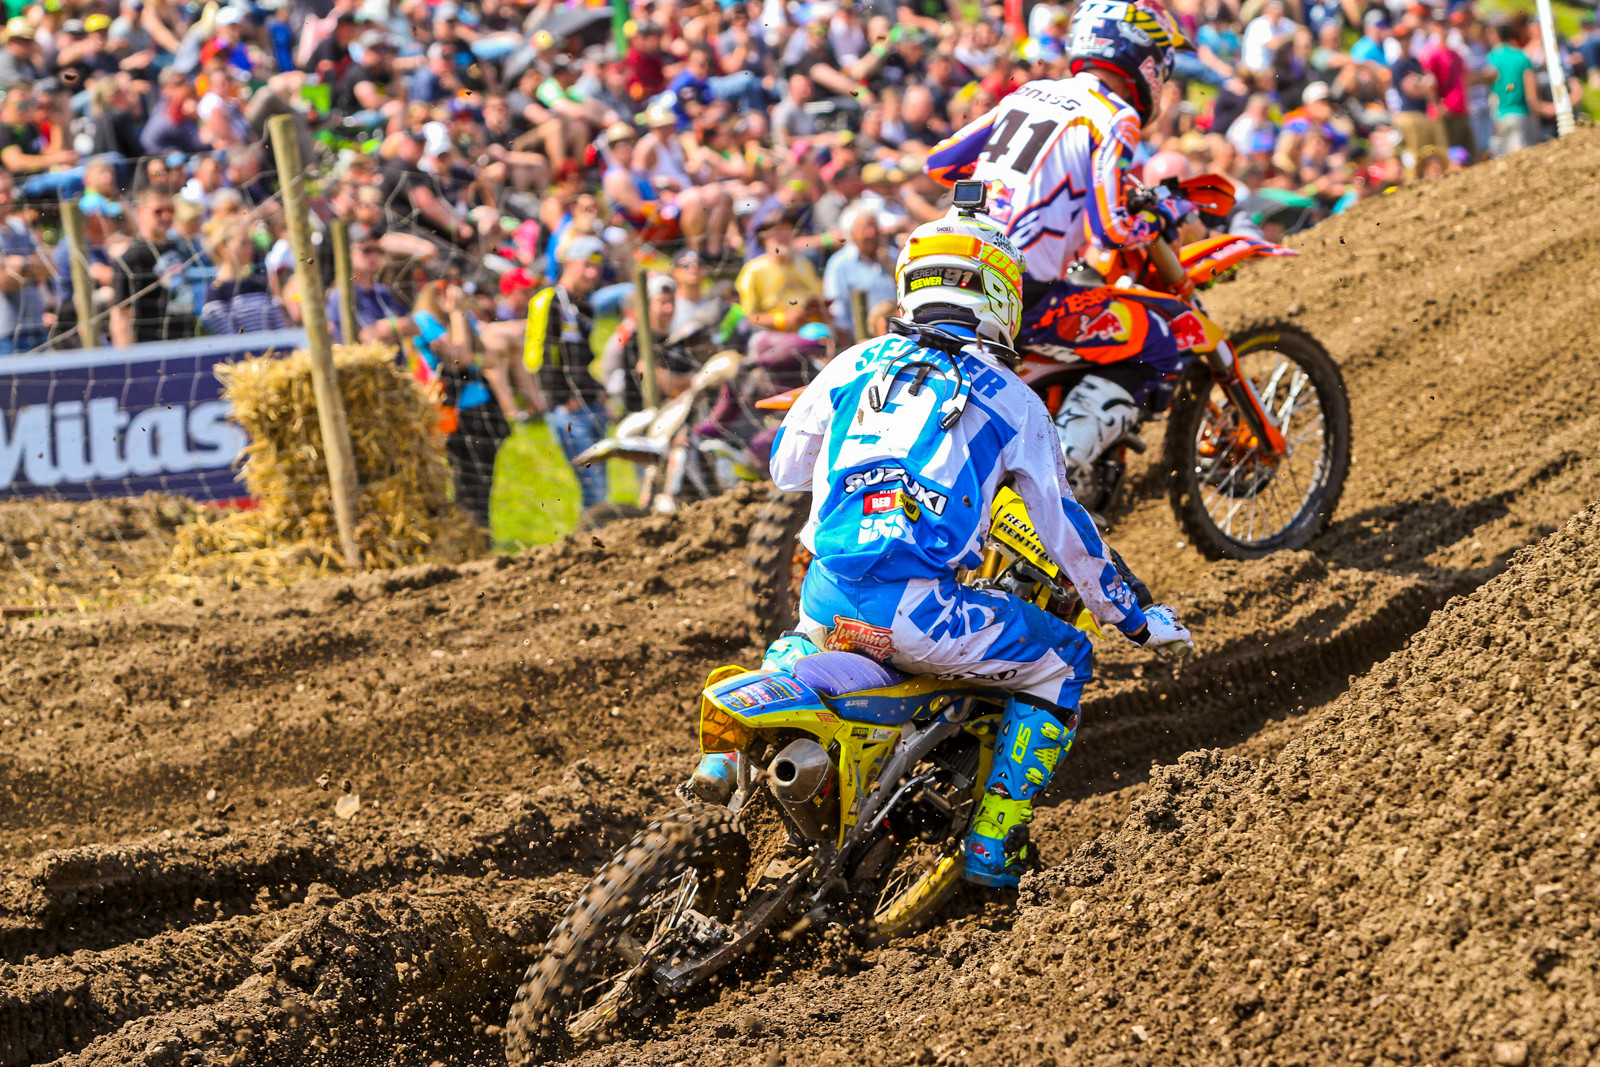 Pauls Jonass and Jeremy Seewer - Photo Blast: 2017 MXGP of Germany - Motocross Pictures - Vital MX